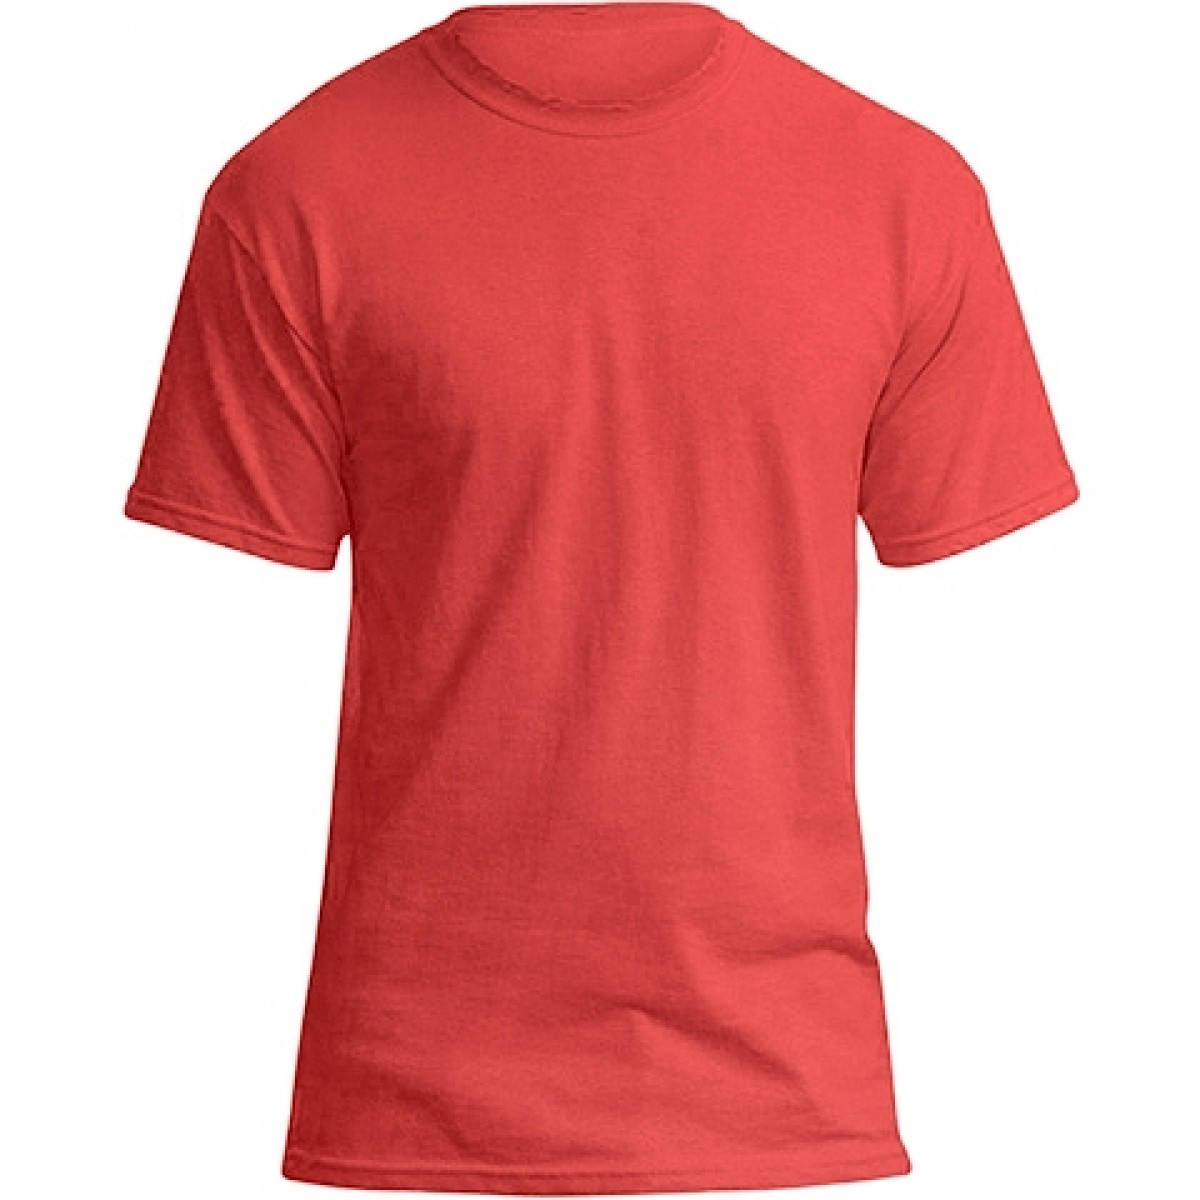 Soft 100% Cotton T-Shirt-Heather Red-S